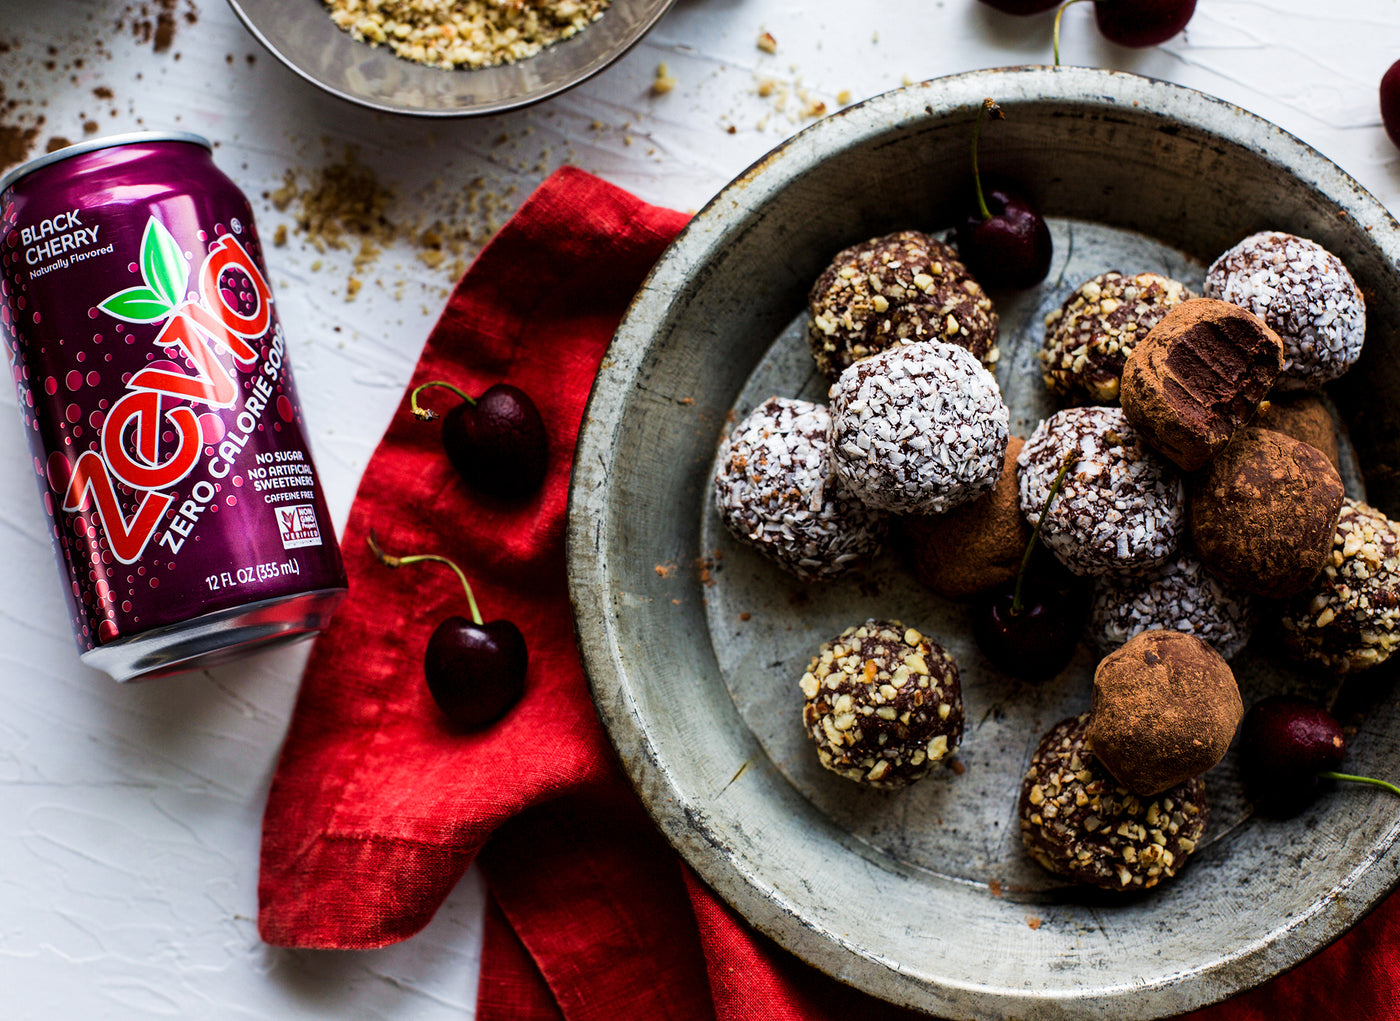 Black Cherry Chocolate Truffles